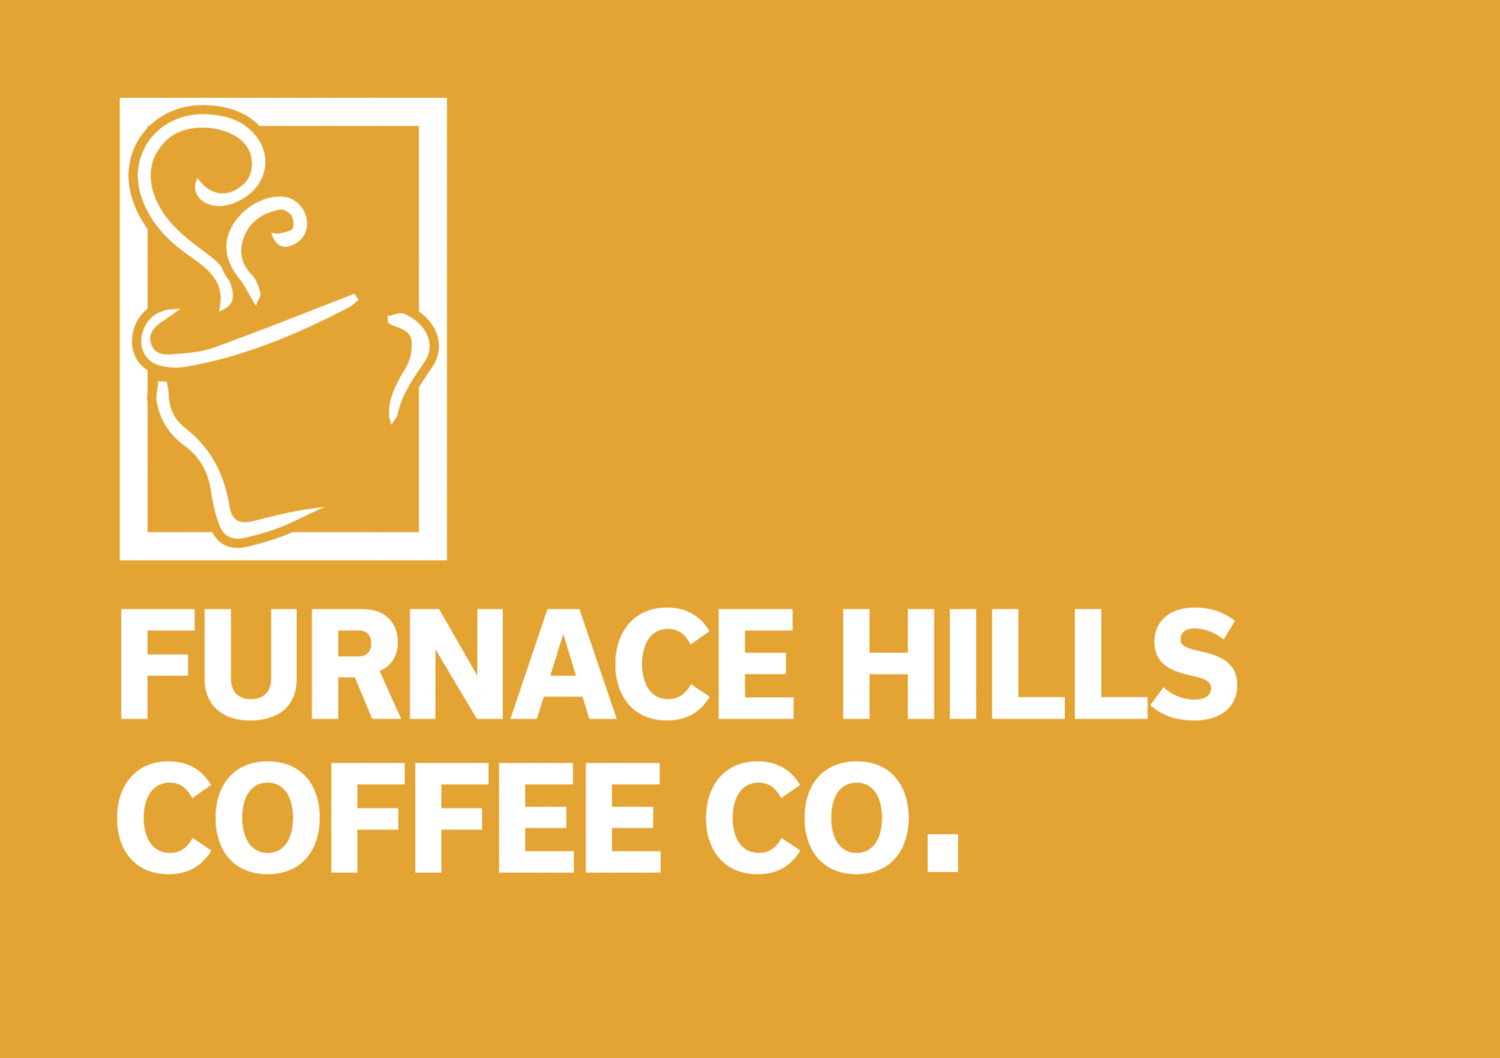 Furnace Hills Coffee